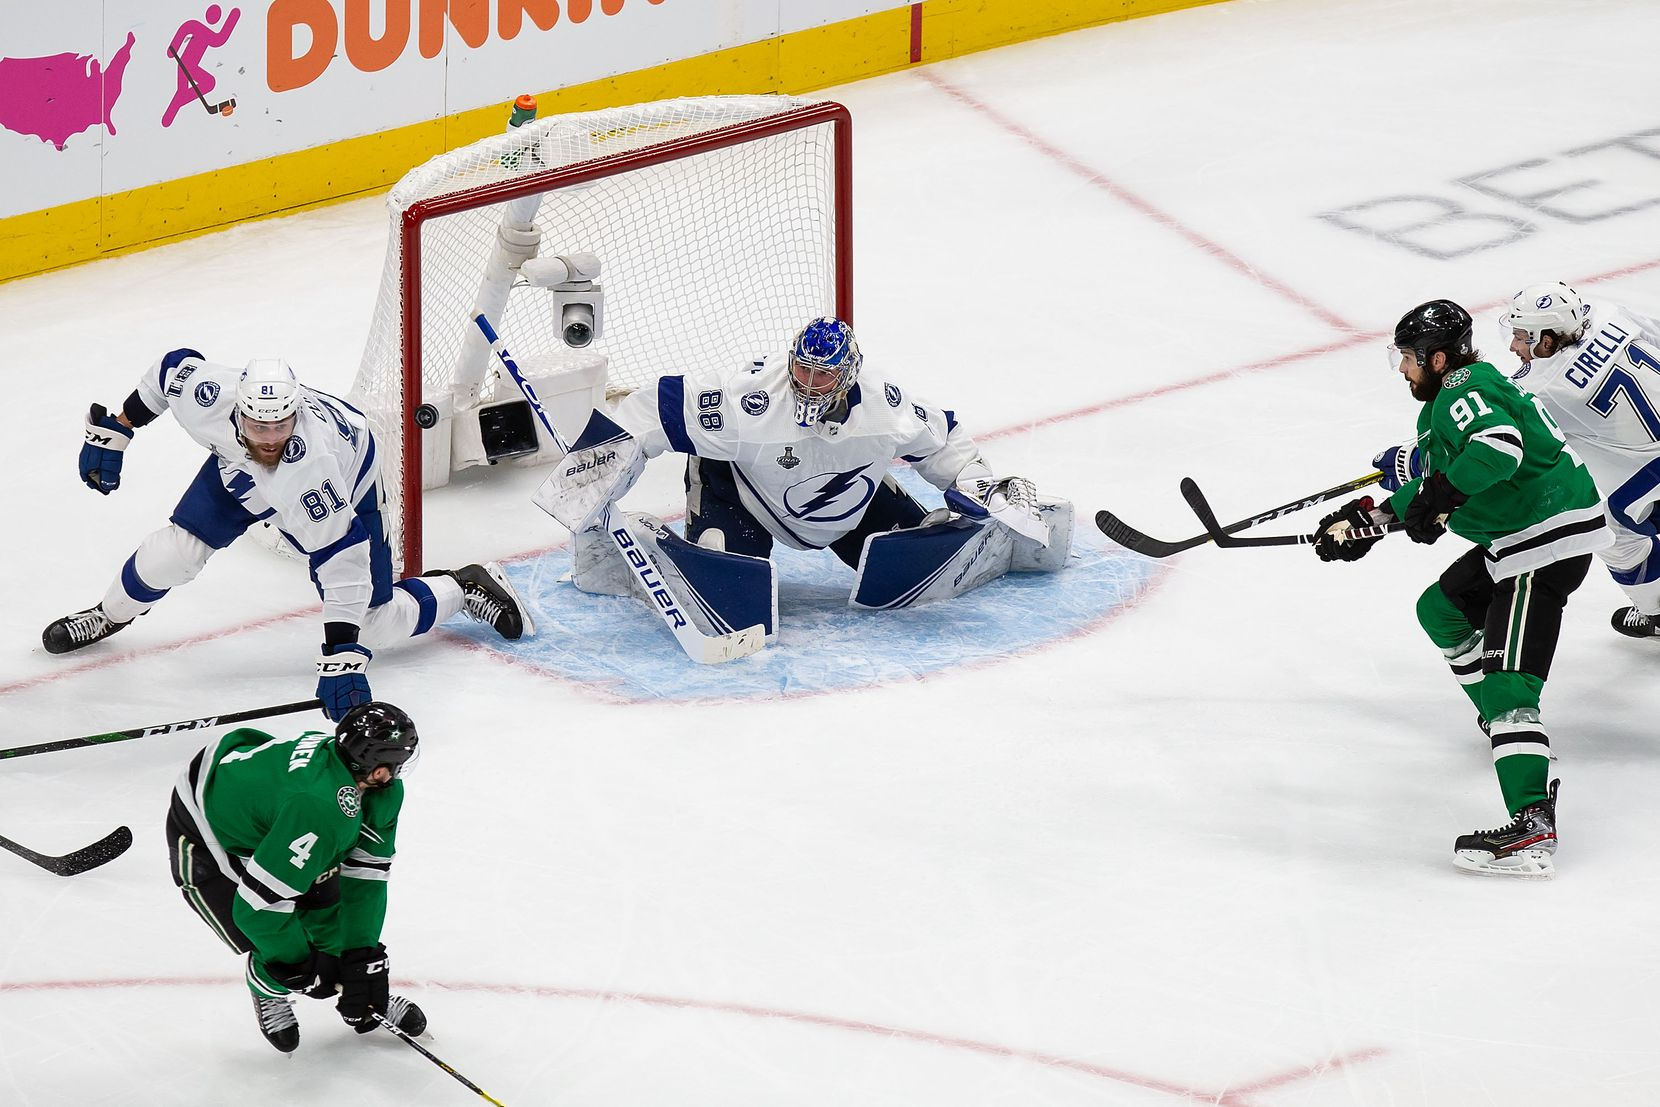 Miro Heiskanen (4) and Tyler Seguin (91) of the Dallas Stars attack the net as goaltender Andrei Vasilevskiy (88) of the Tampa Bay Lightning makes a save during Game Three of the Stanley Cup Final at Rogers Place in Edmonton, Alberta, Canada on Wednesday, September 23, 2020. (Codie McLachlan/Special Contributor)